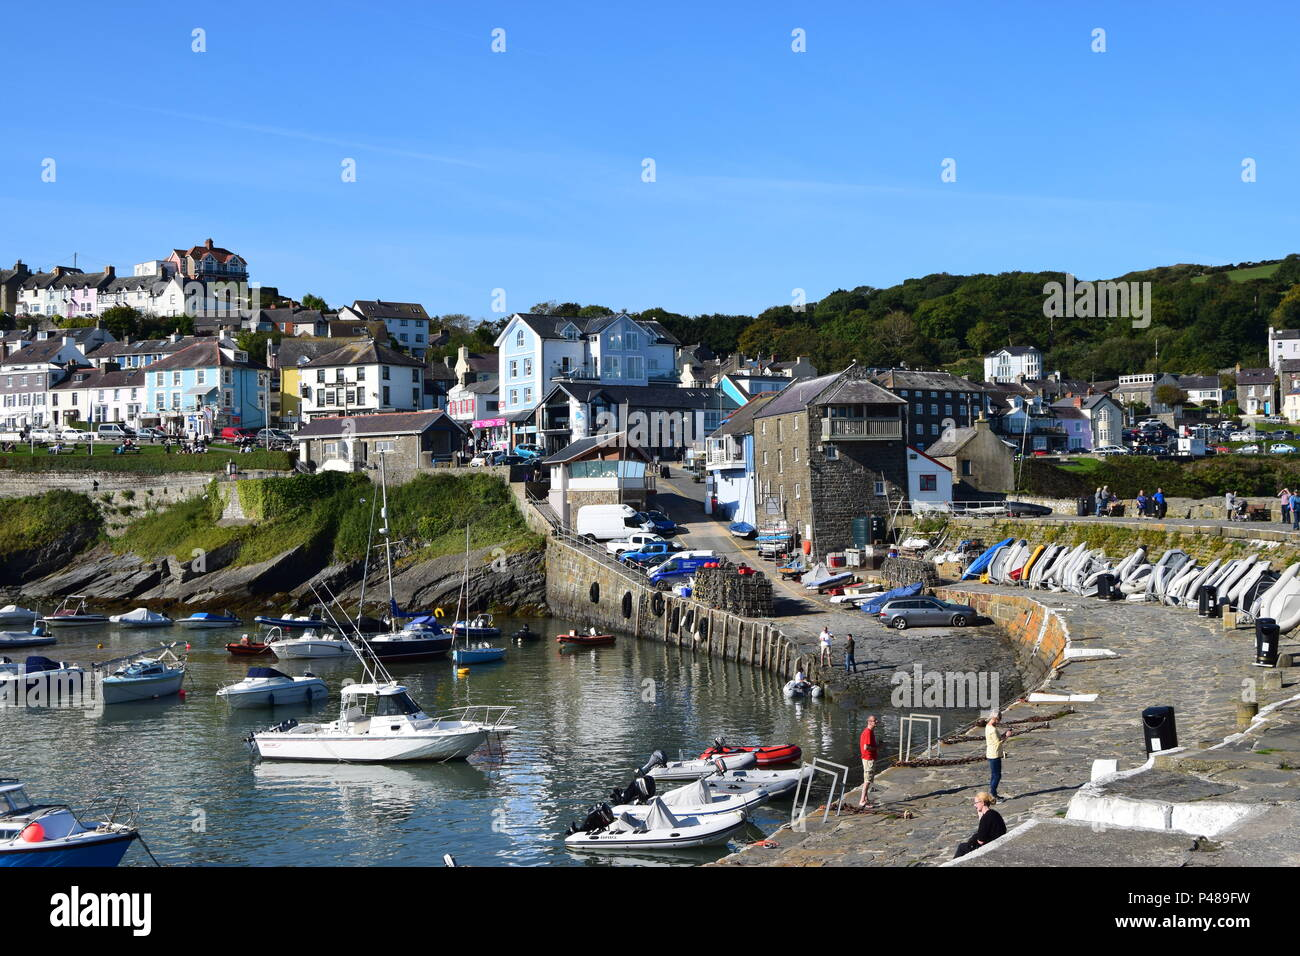 Picturesque fishing village at New Quay Wales - Stock Image